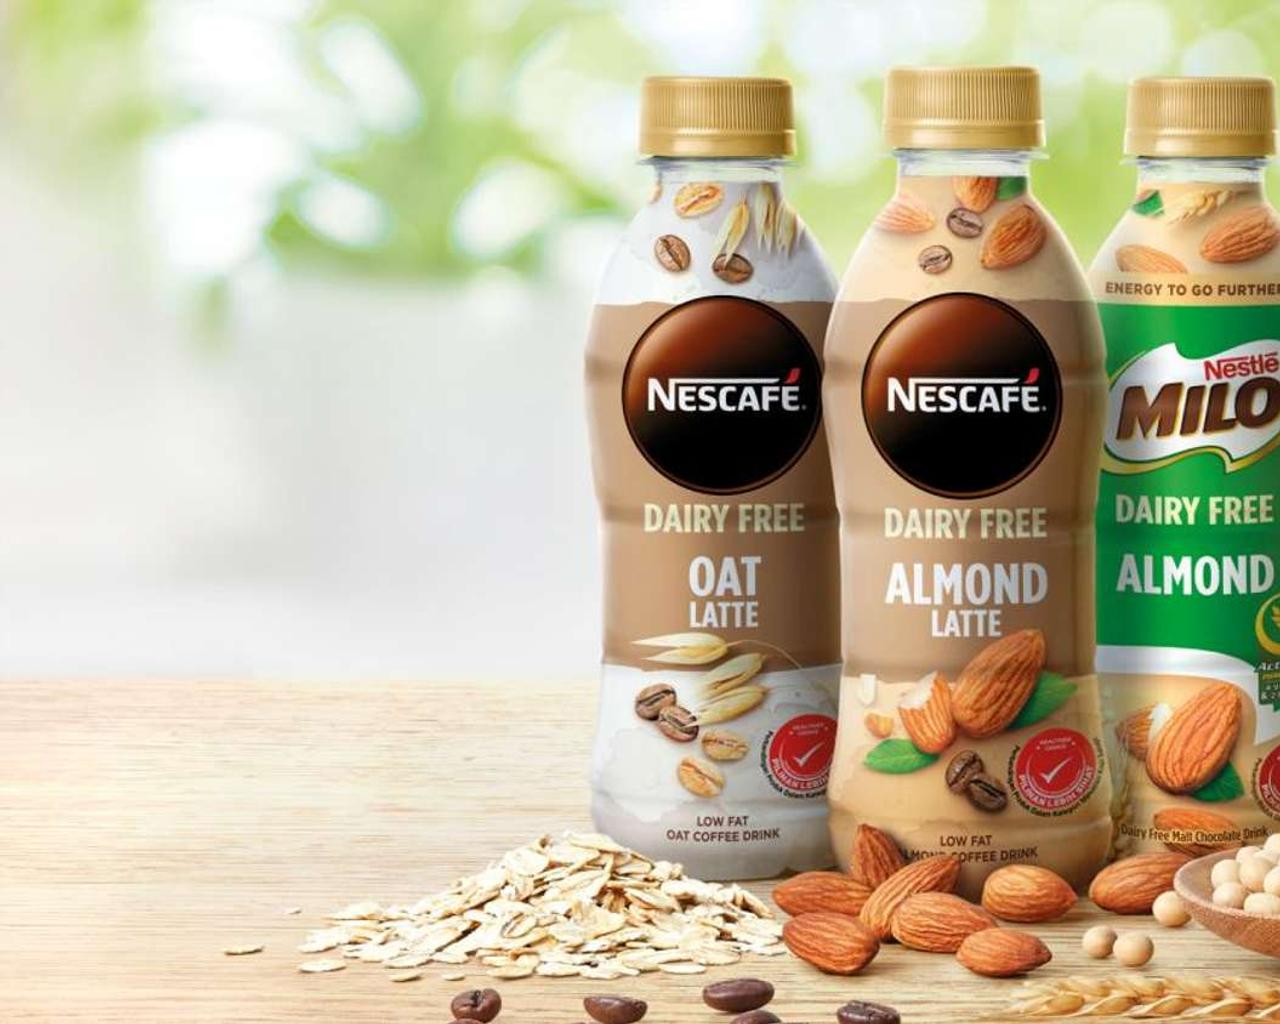 Milk-free Milo and meatless 'pork': Nestlé and other brands bet big on plant-based food in Asia